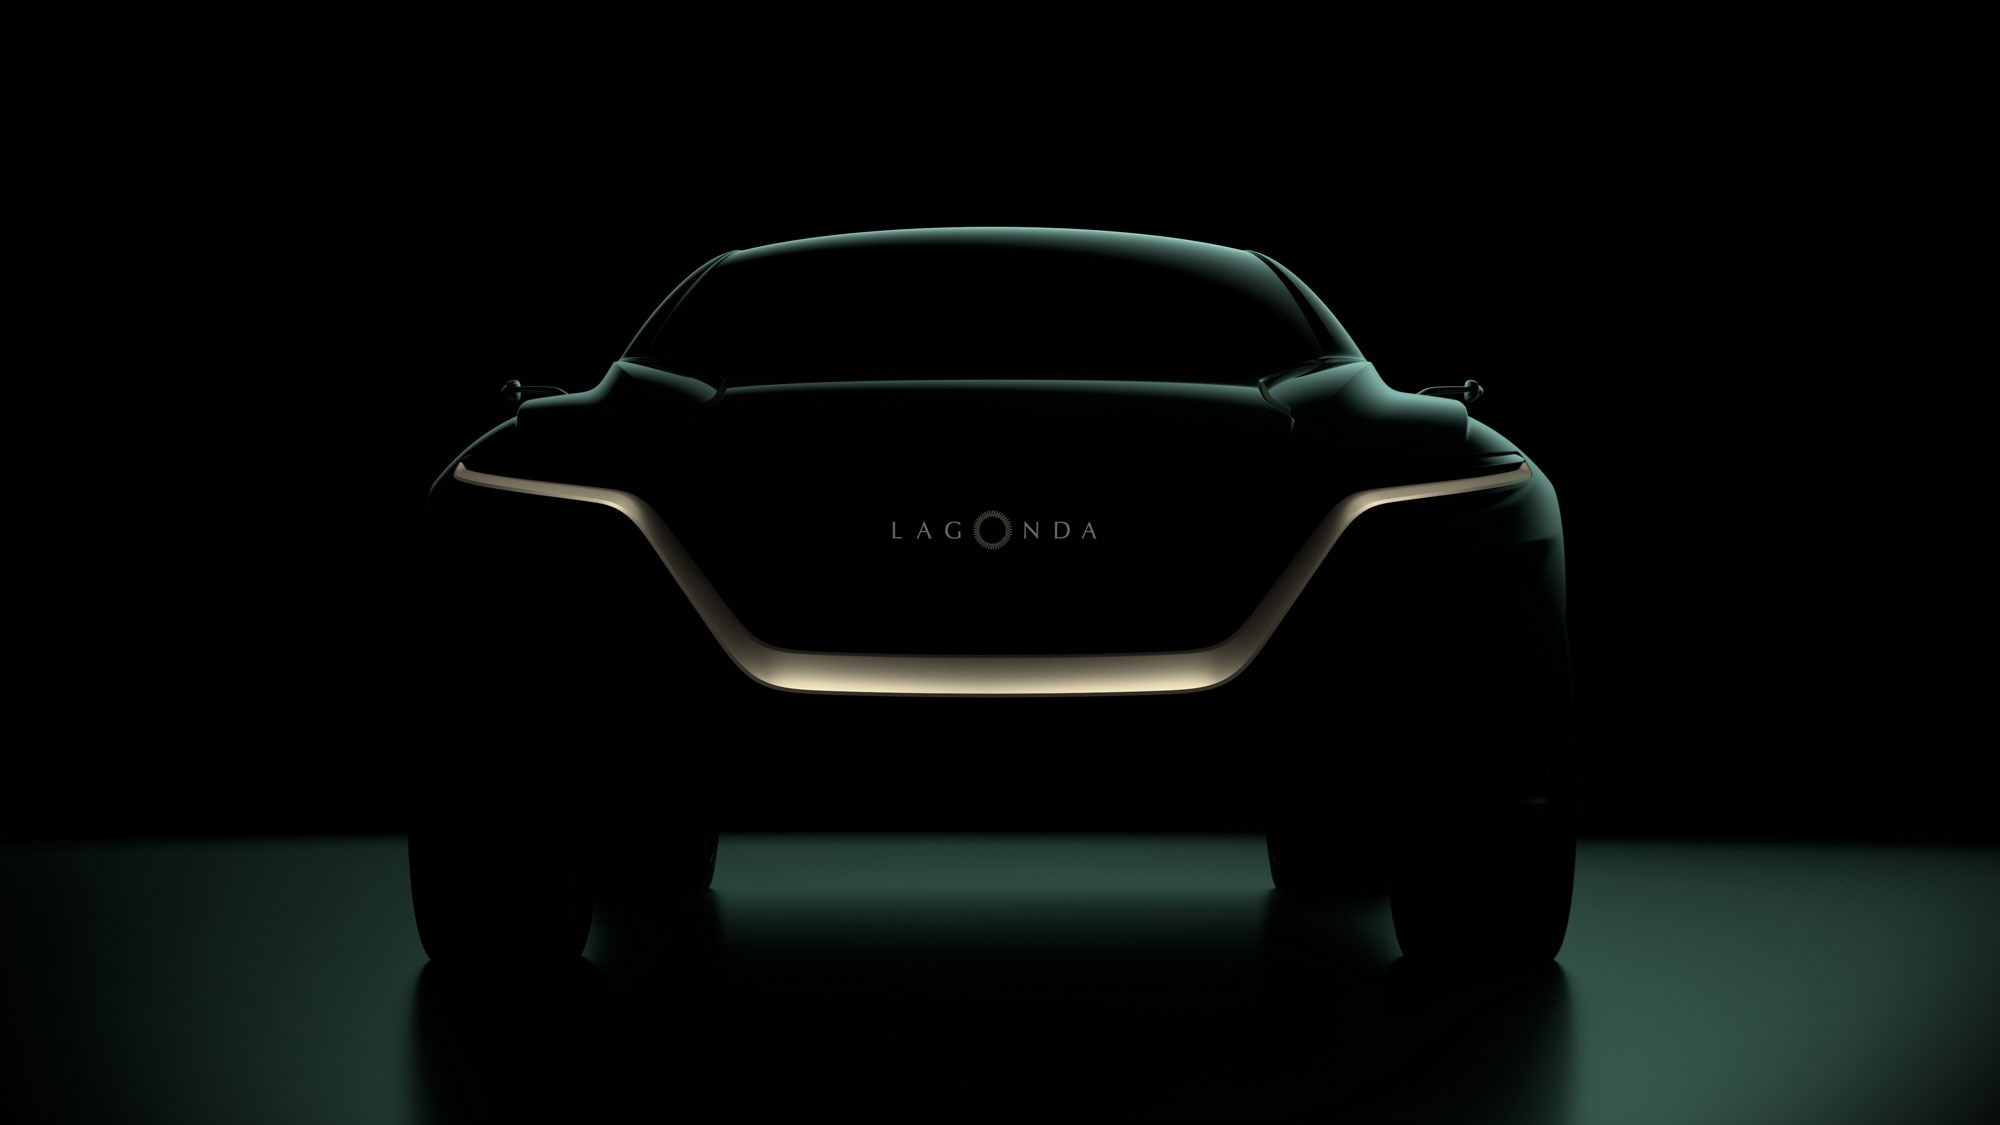 Aston's Lagonda concept to pave way for radical crossover